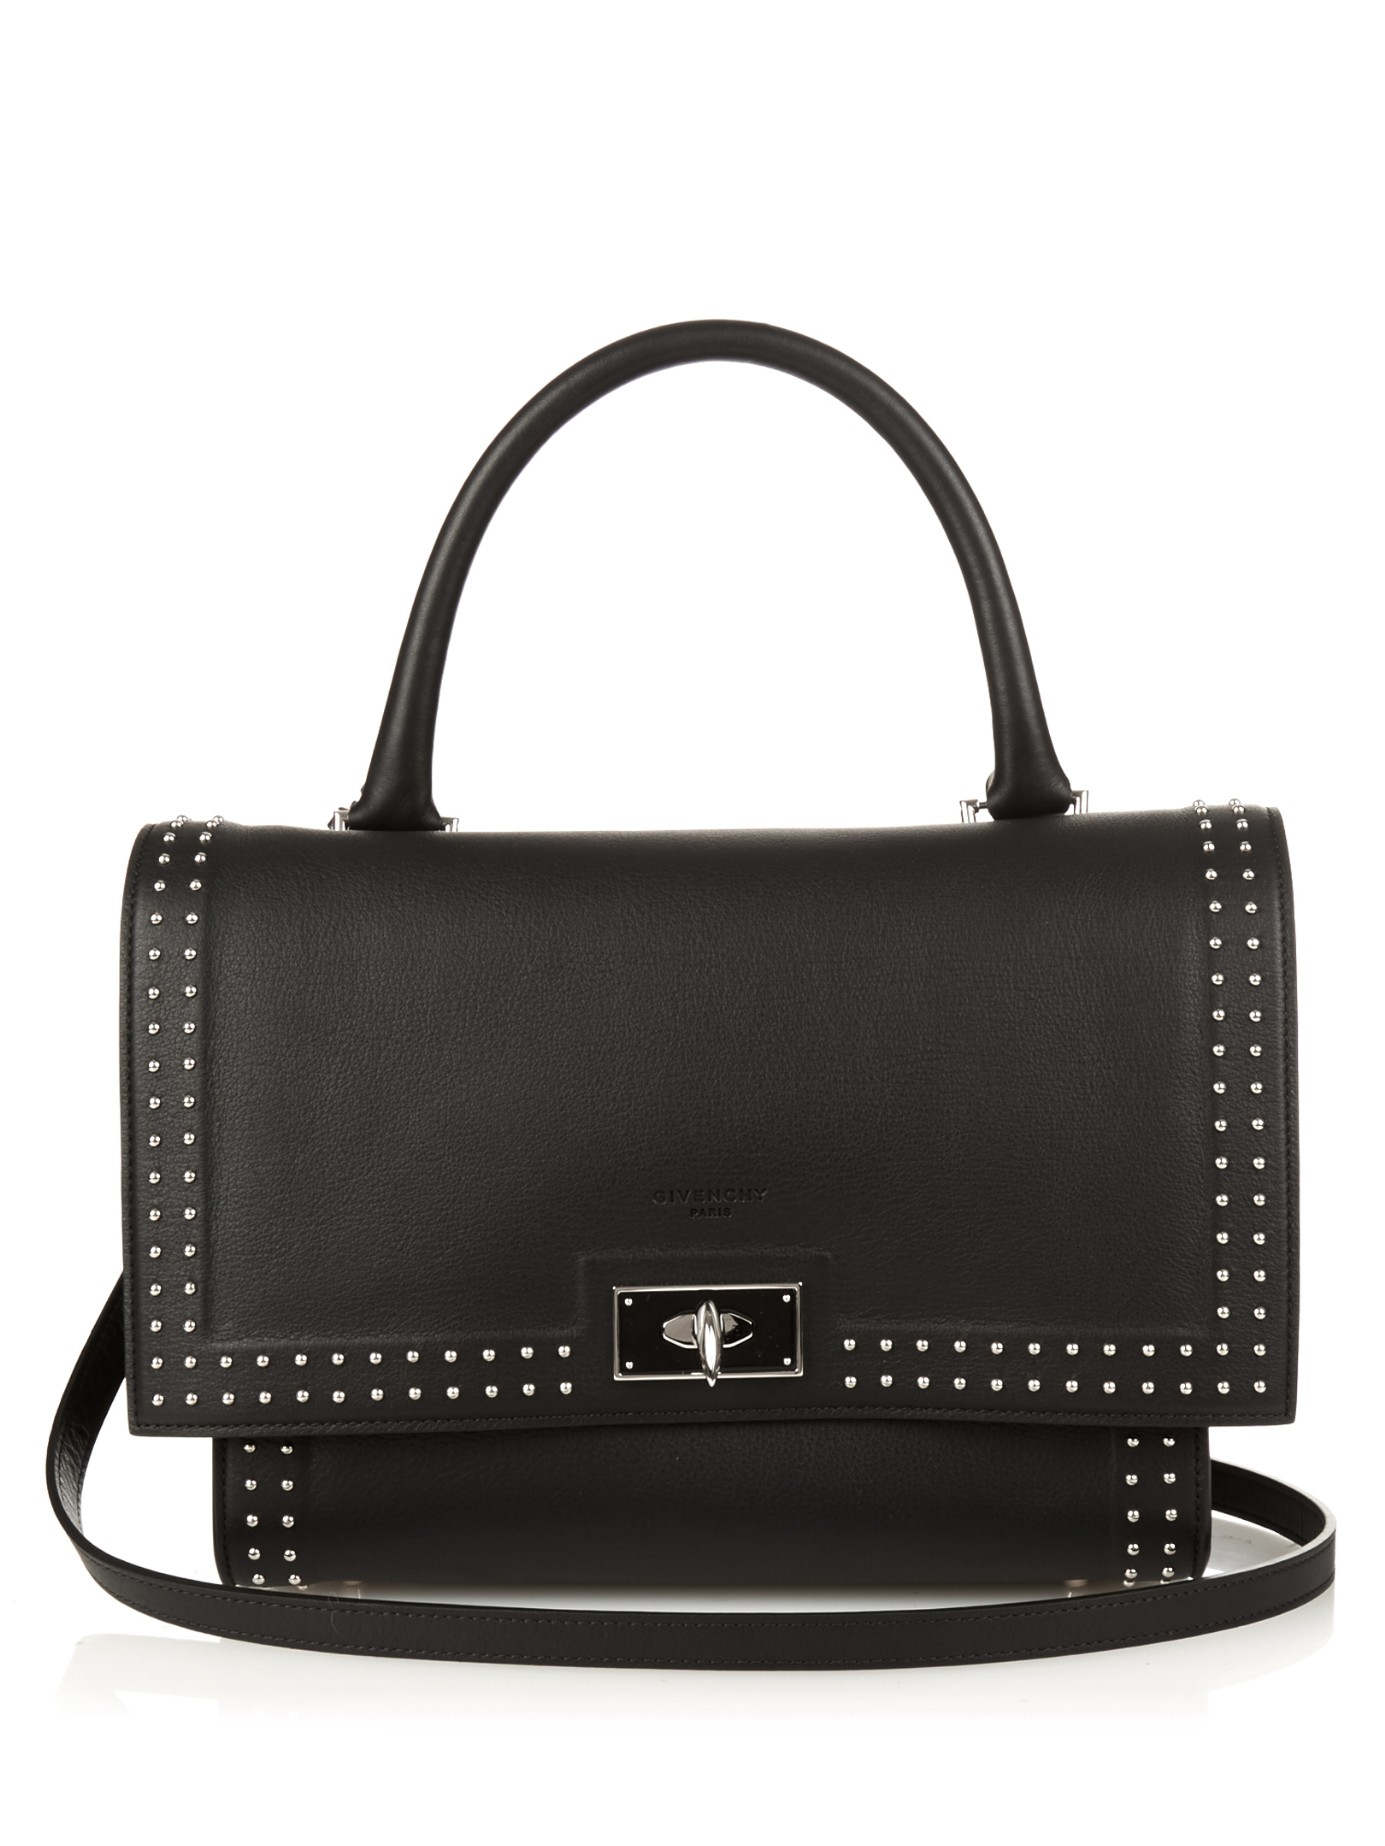 57758c20f87c Lyst - Givenchy Shark Stud-trim Leather Bag in Black